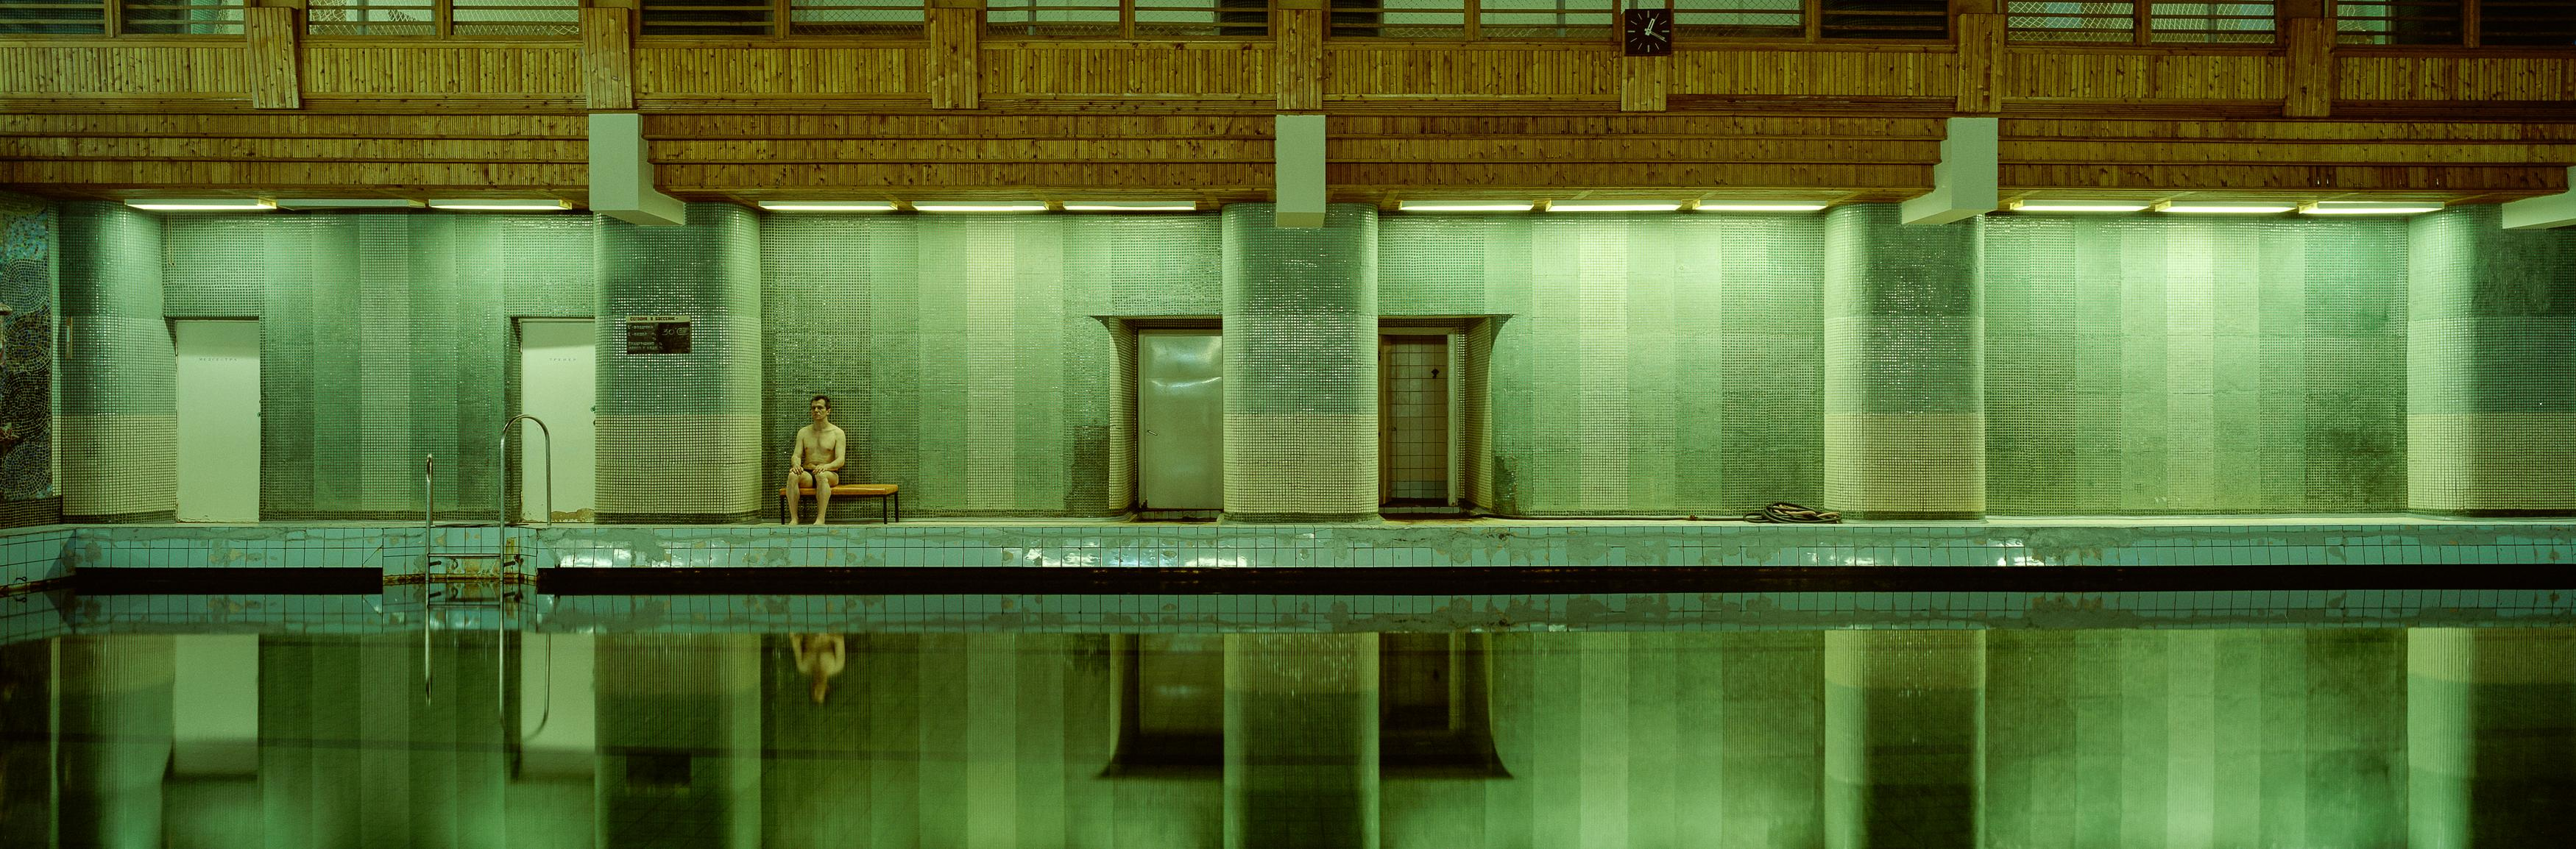 Oleg by Christian Houge - panoramic photography, Svalbard, swimming pool, green